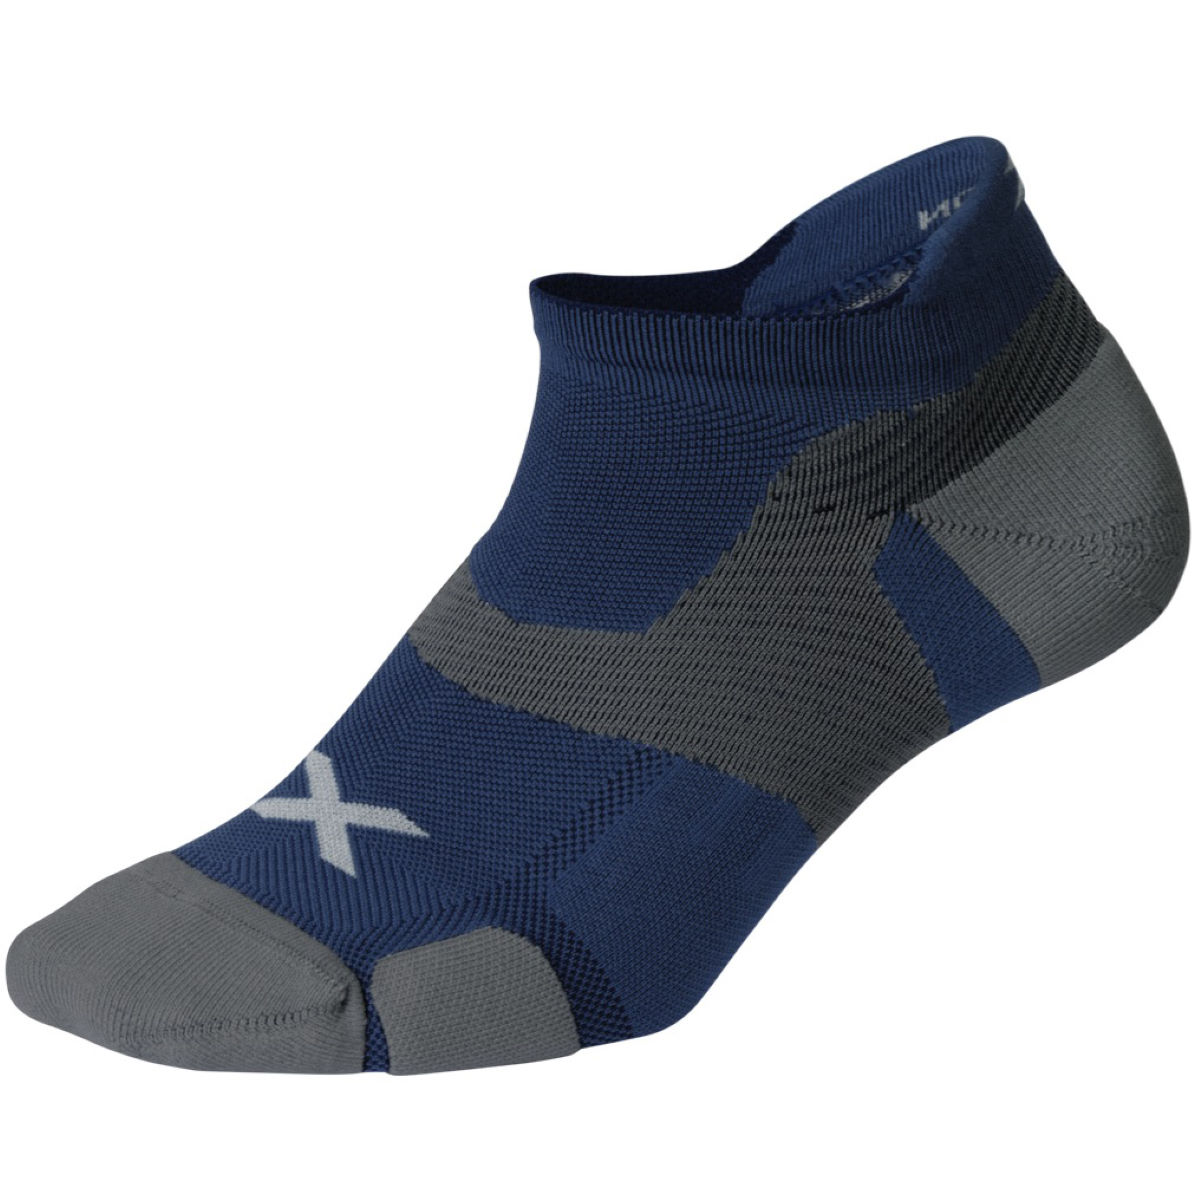 2XU Vectr Cushion No Show Socks - Calcetines